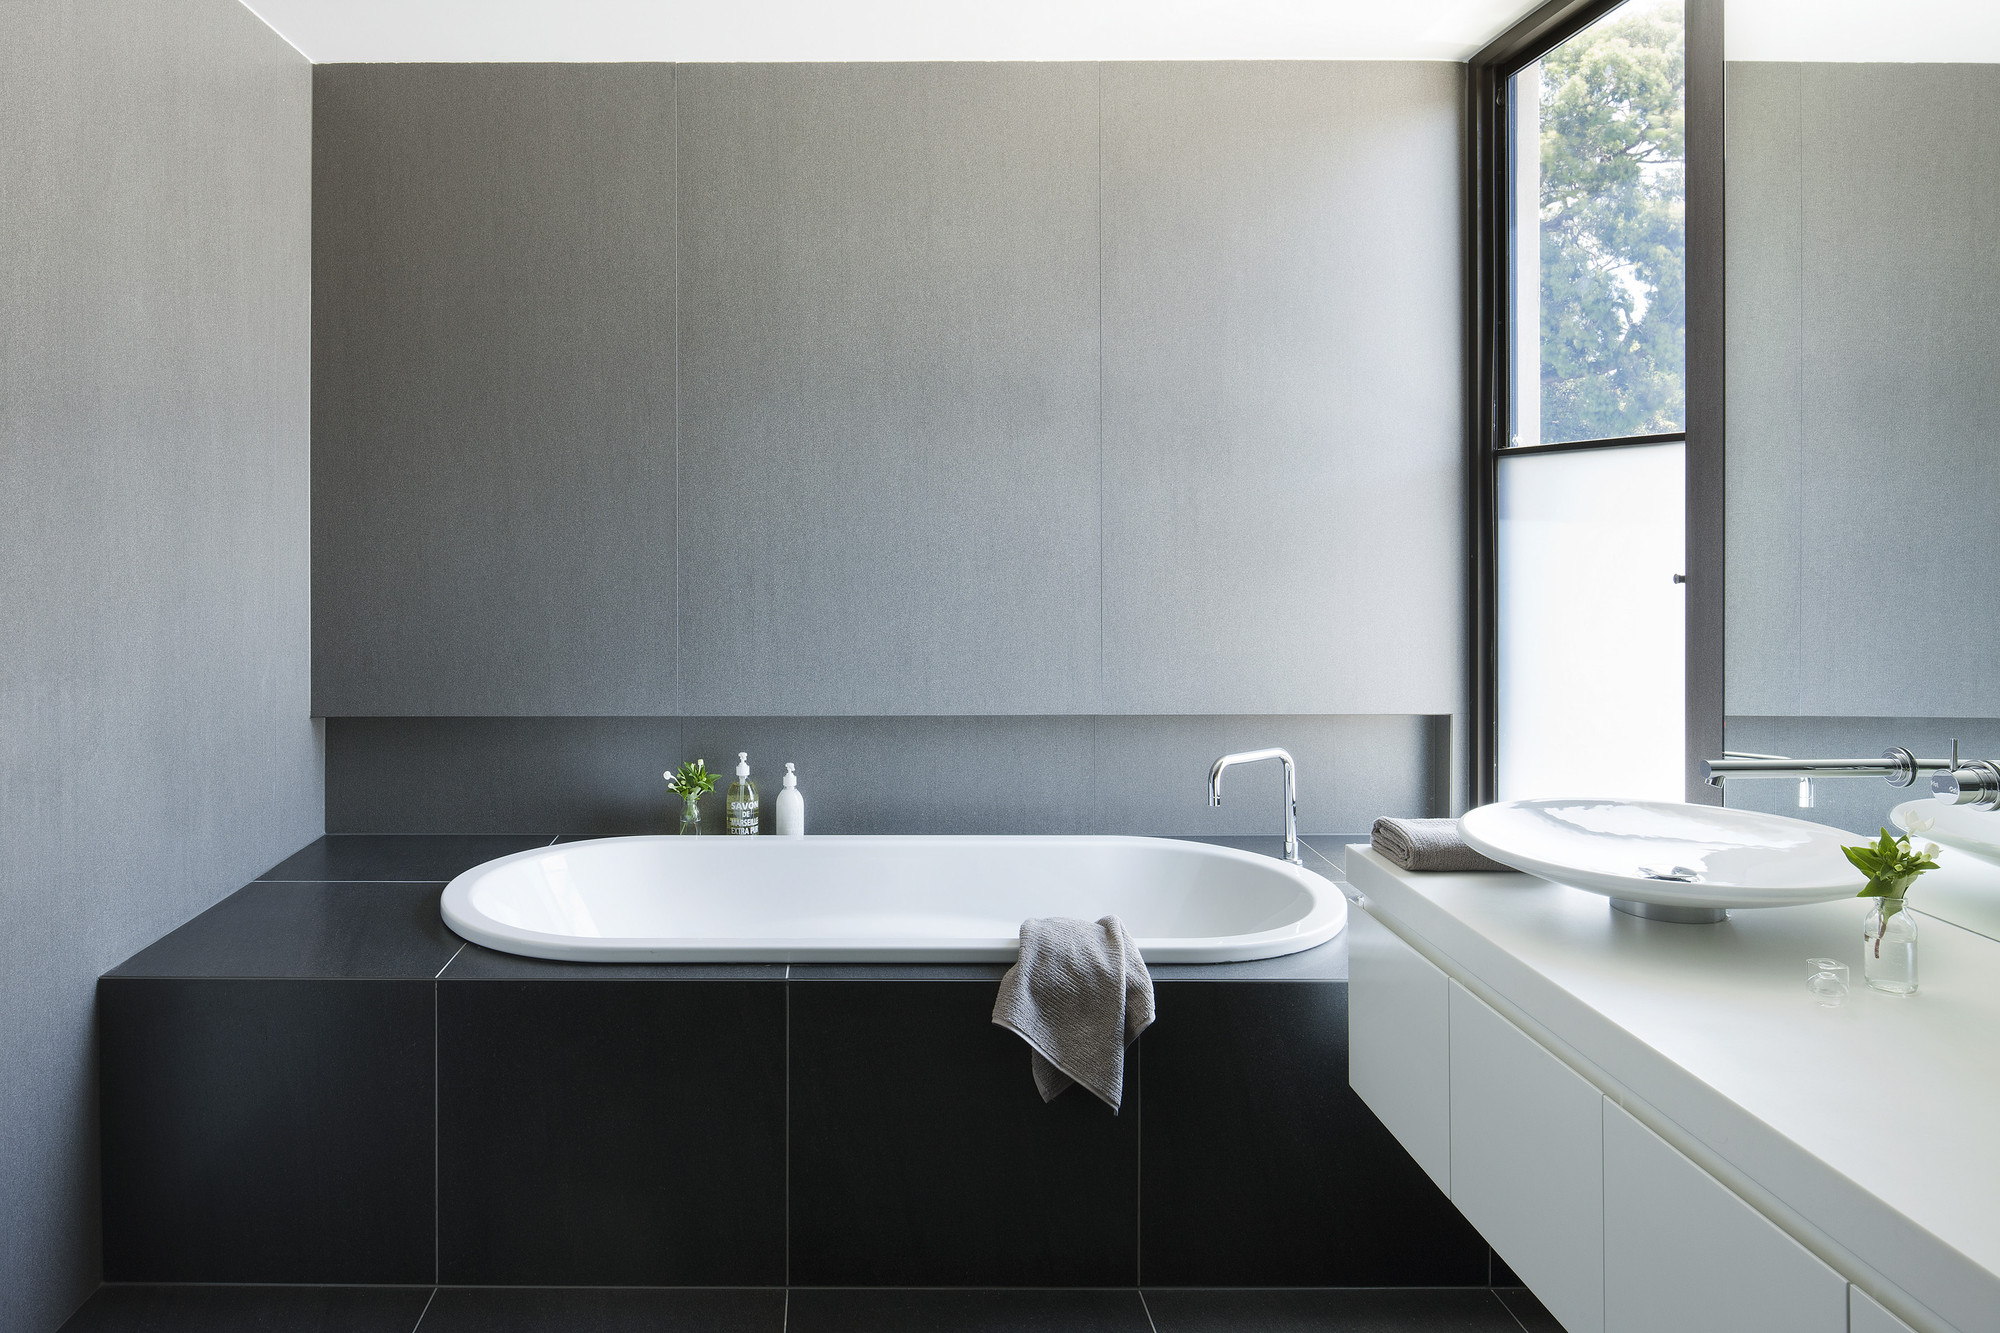 50c7dcffb3fc4b2b100000ee Malvern House Canny Design Photo on Small Modern Bathroom Design